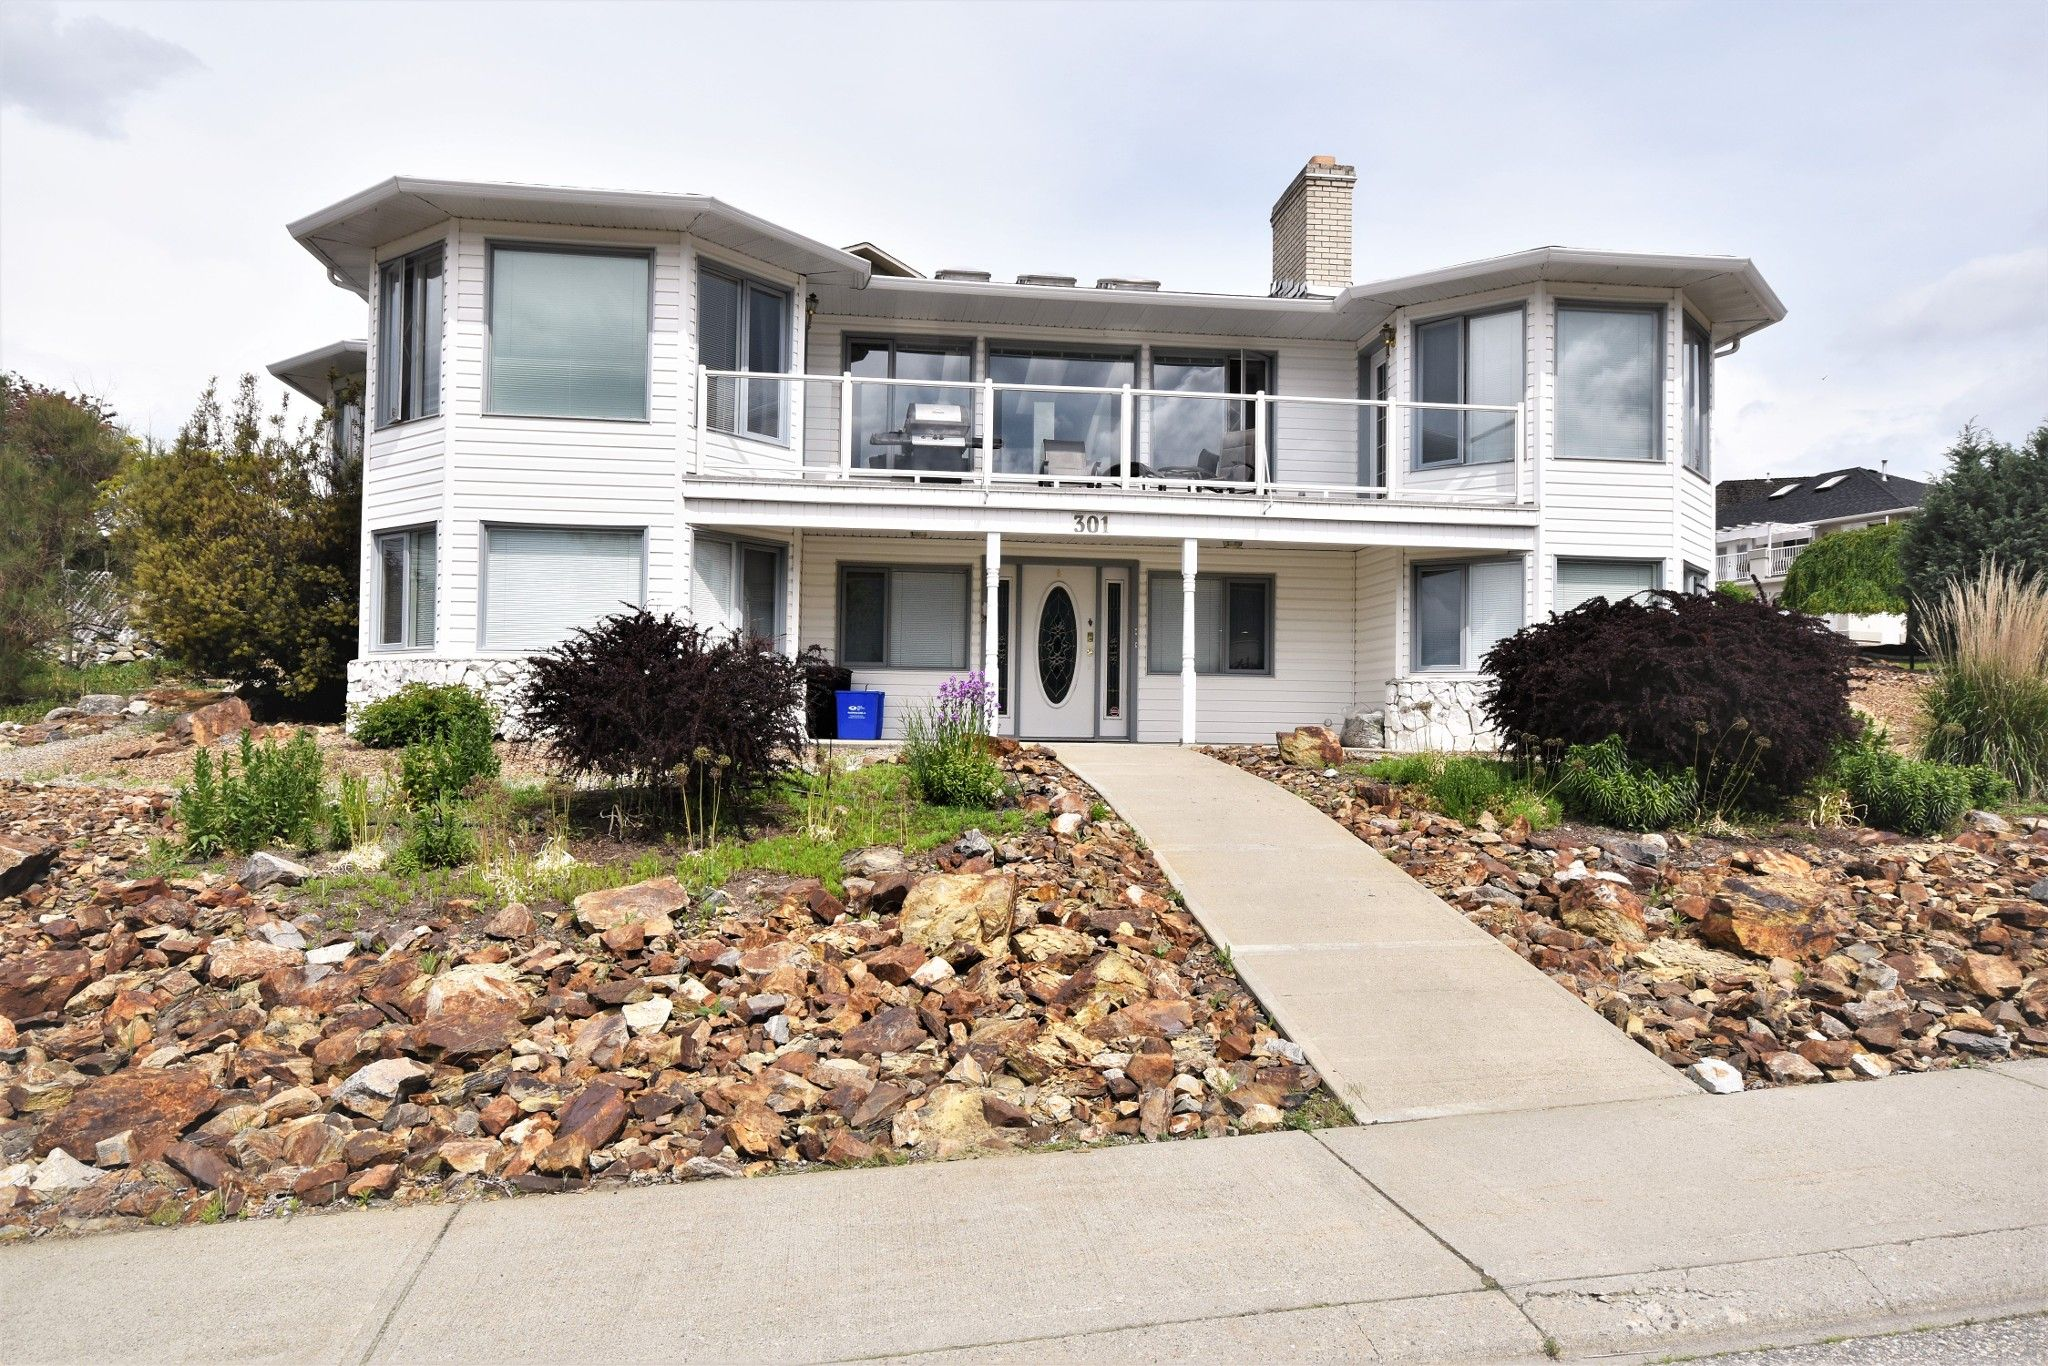 Main Photo: 301 Sunshine Place in Vernon: Foothills House for sale (North Okanagan)  : MLS®# 10150760